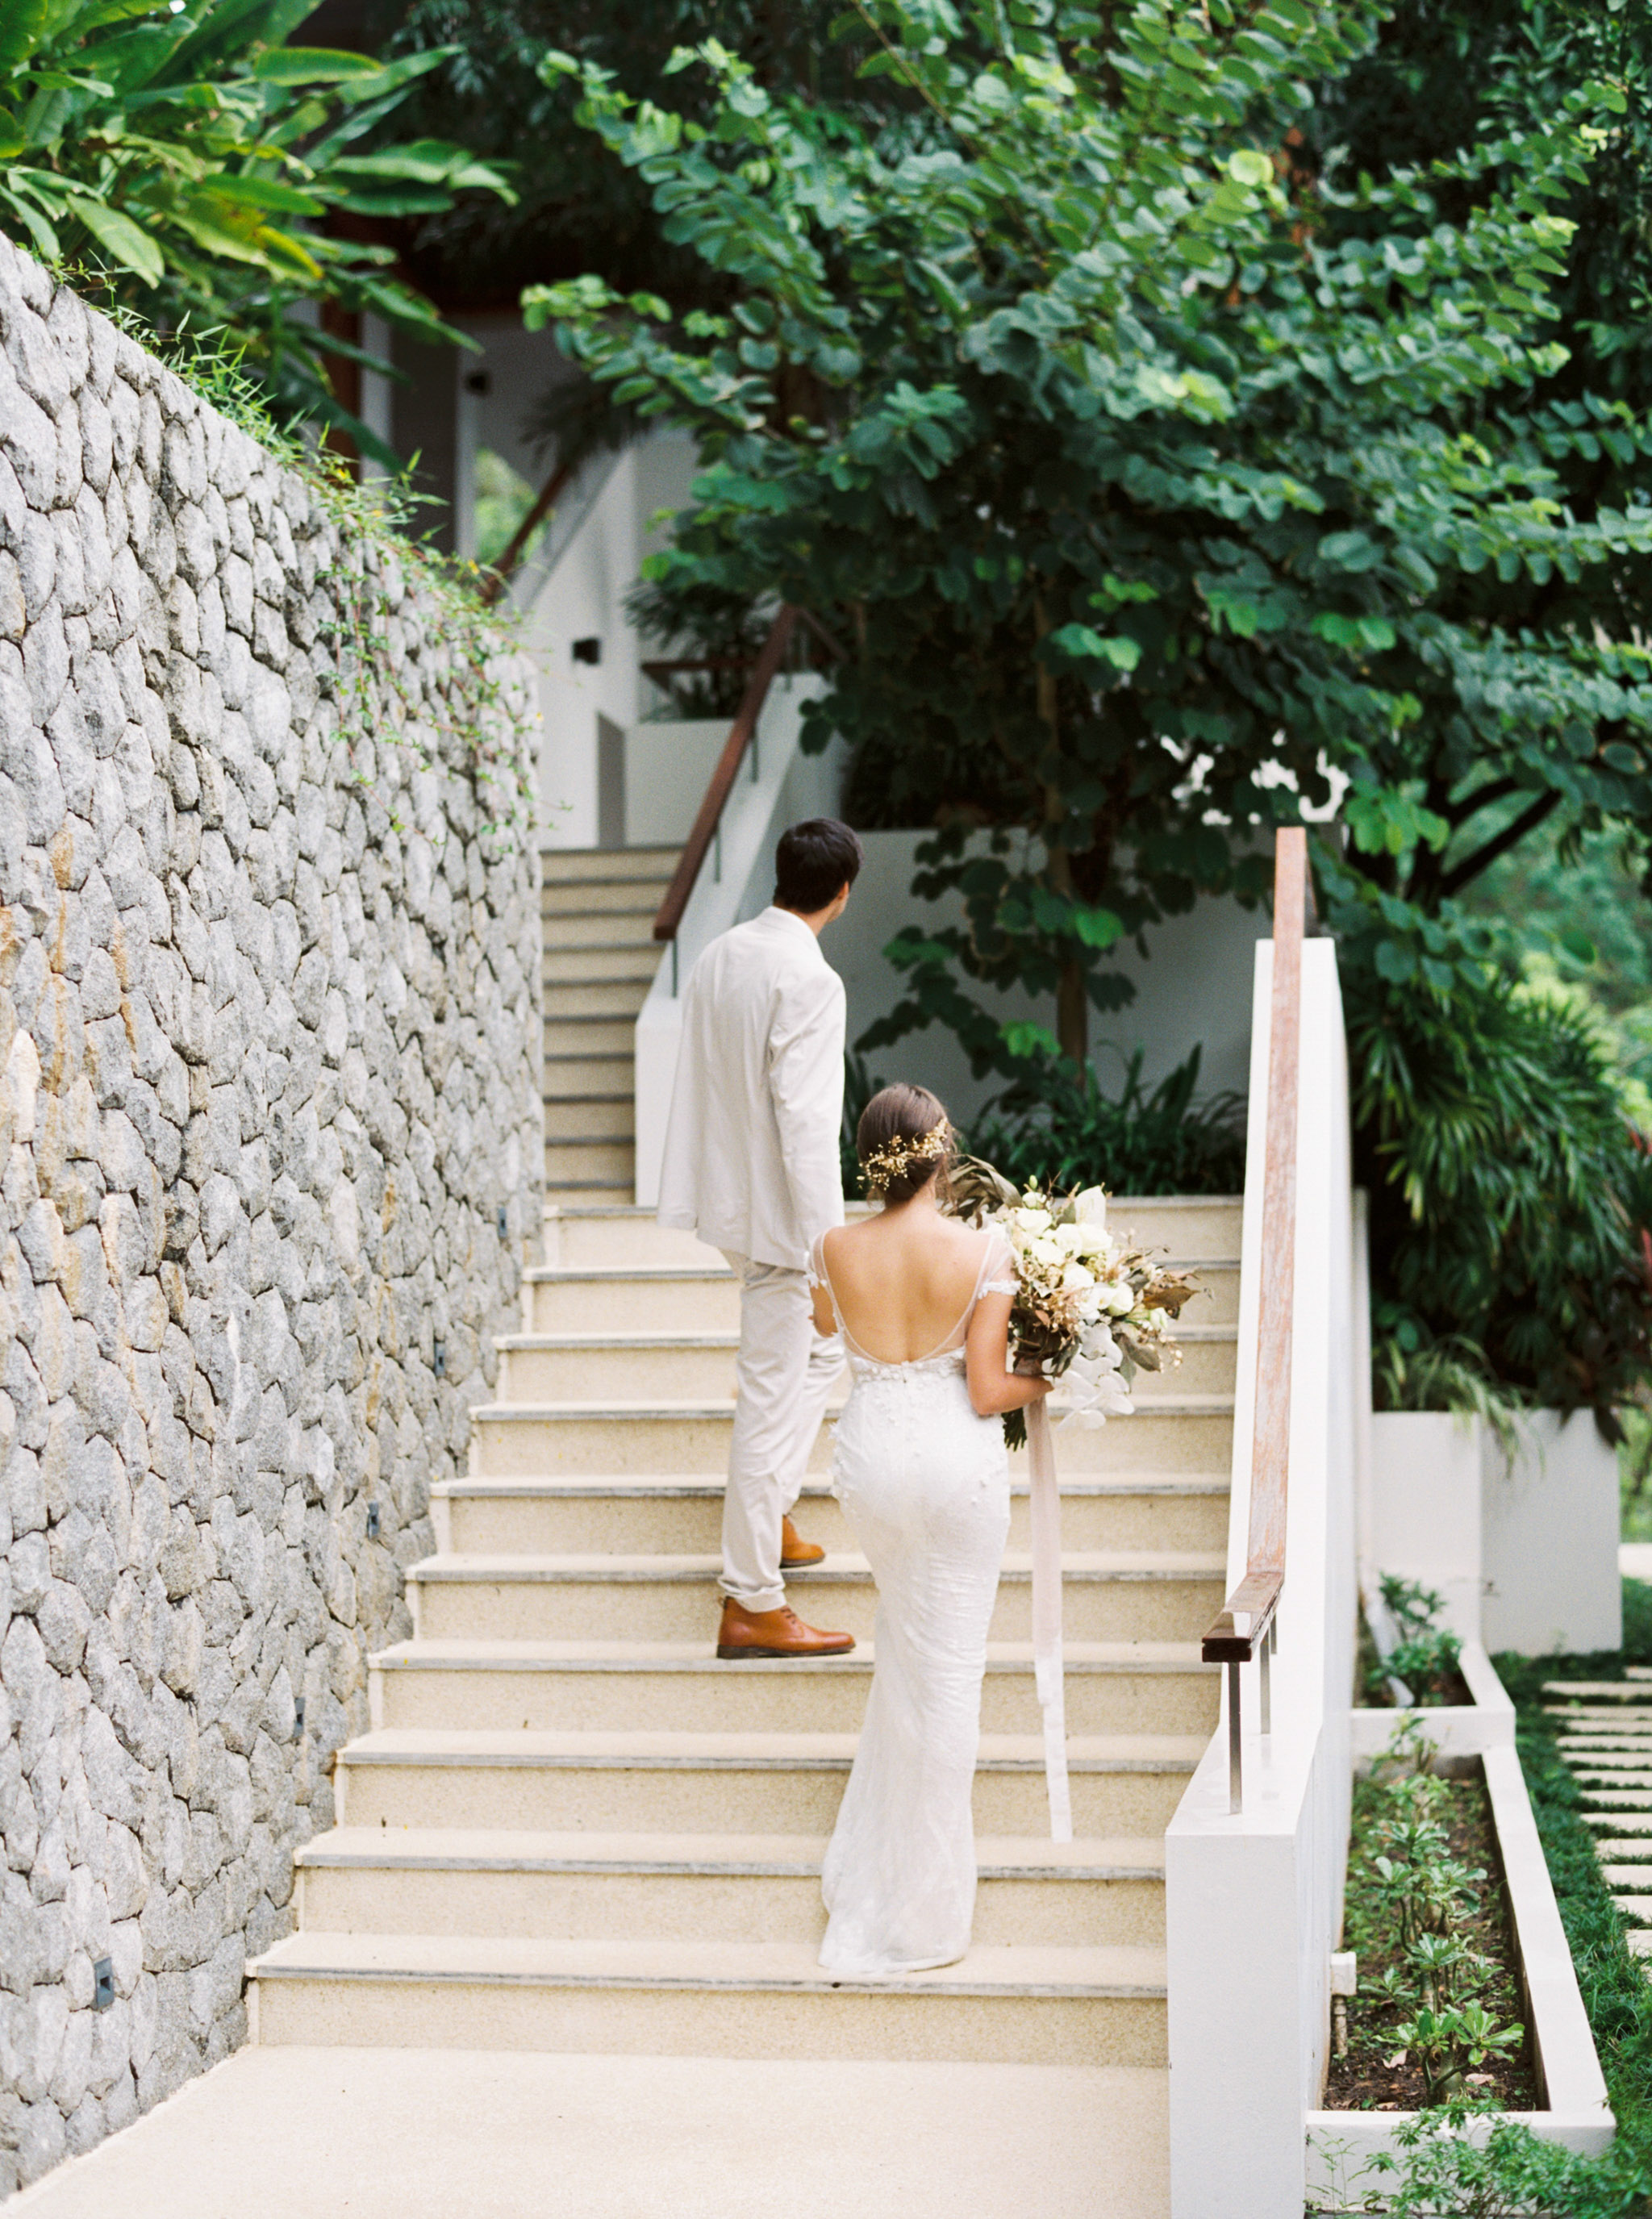 Destination Wedding at The Aquila Luxury Villas in Phuket Thailand Fine Art Film Wedding Photographer Sheri McMahon-00033-33.jpg